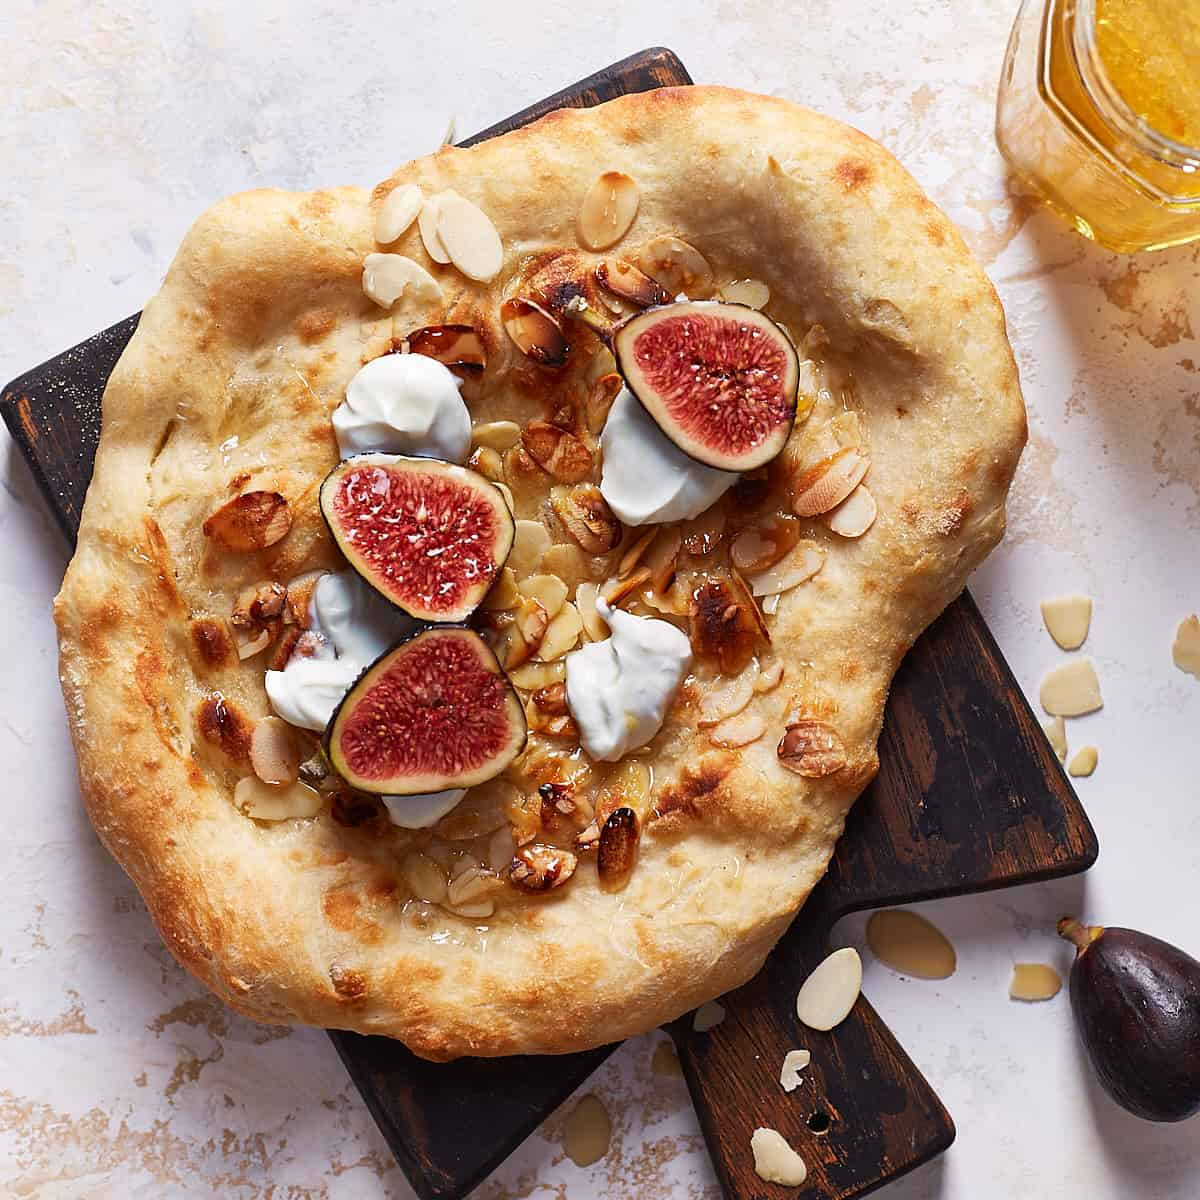 Baked honey pizza with figs and goat cheese topping on a serving board